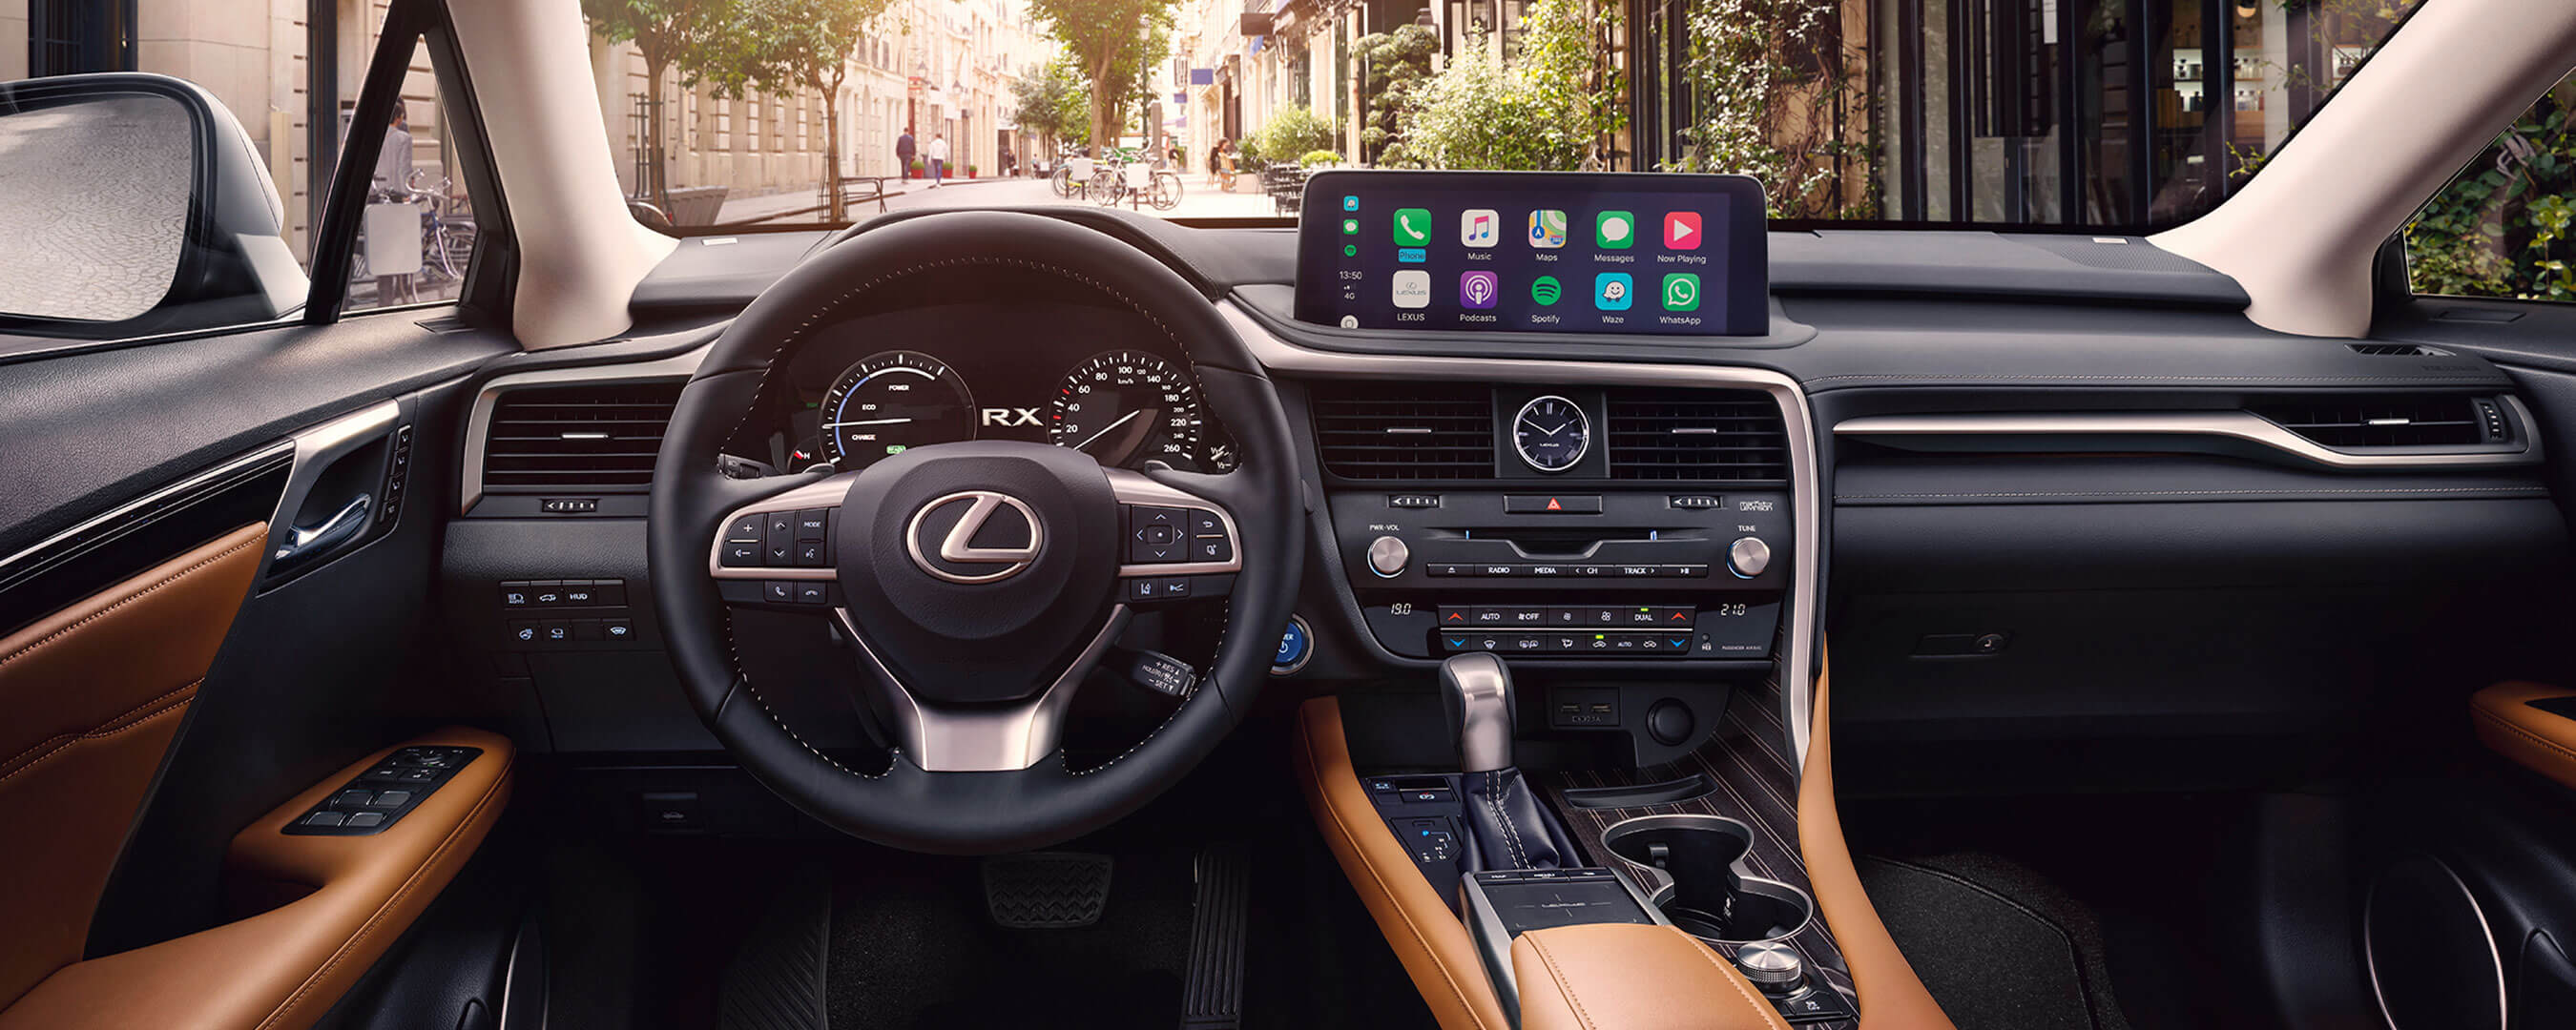 2020 lexus rx experience interior front